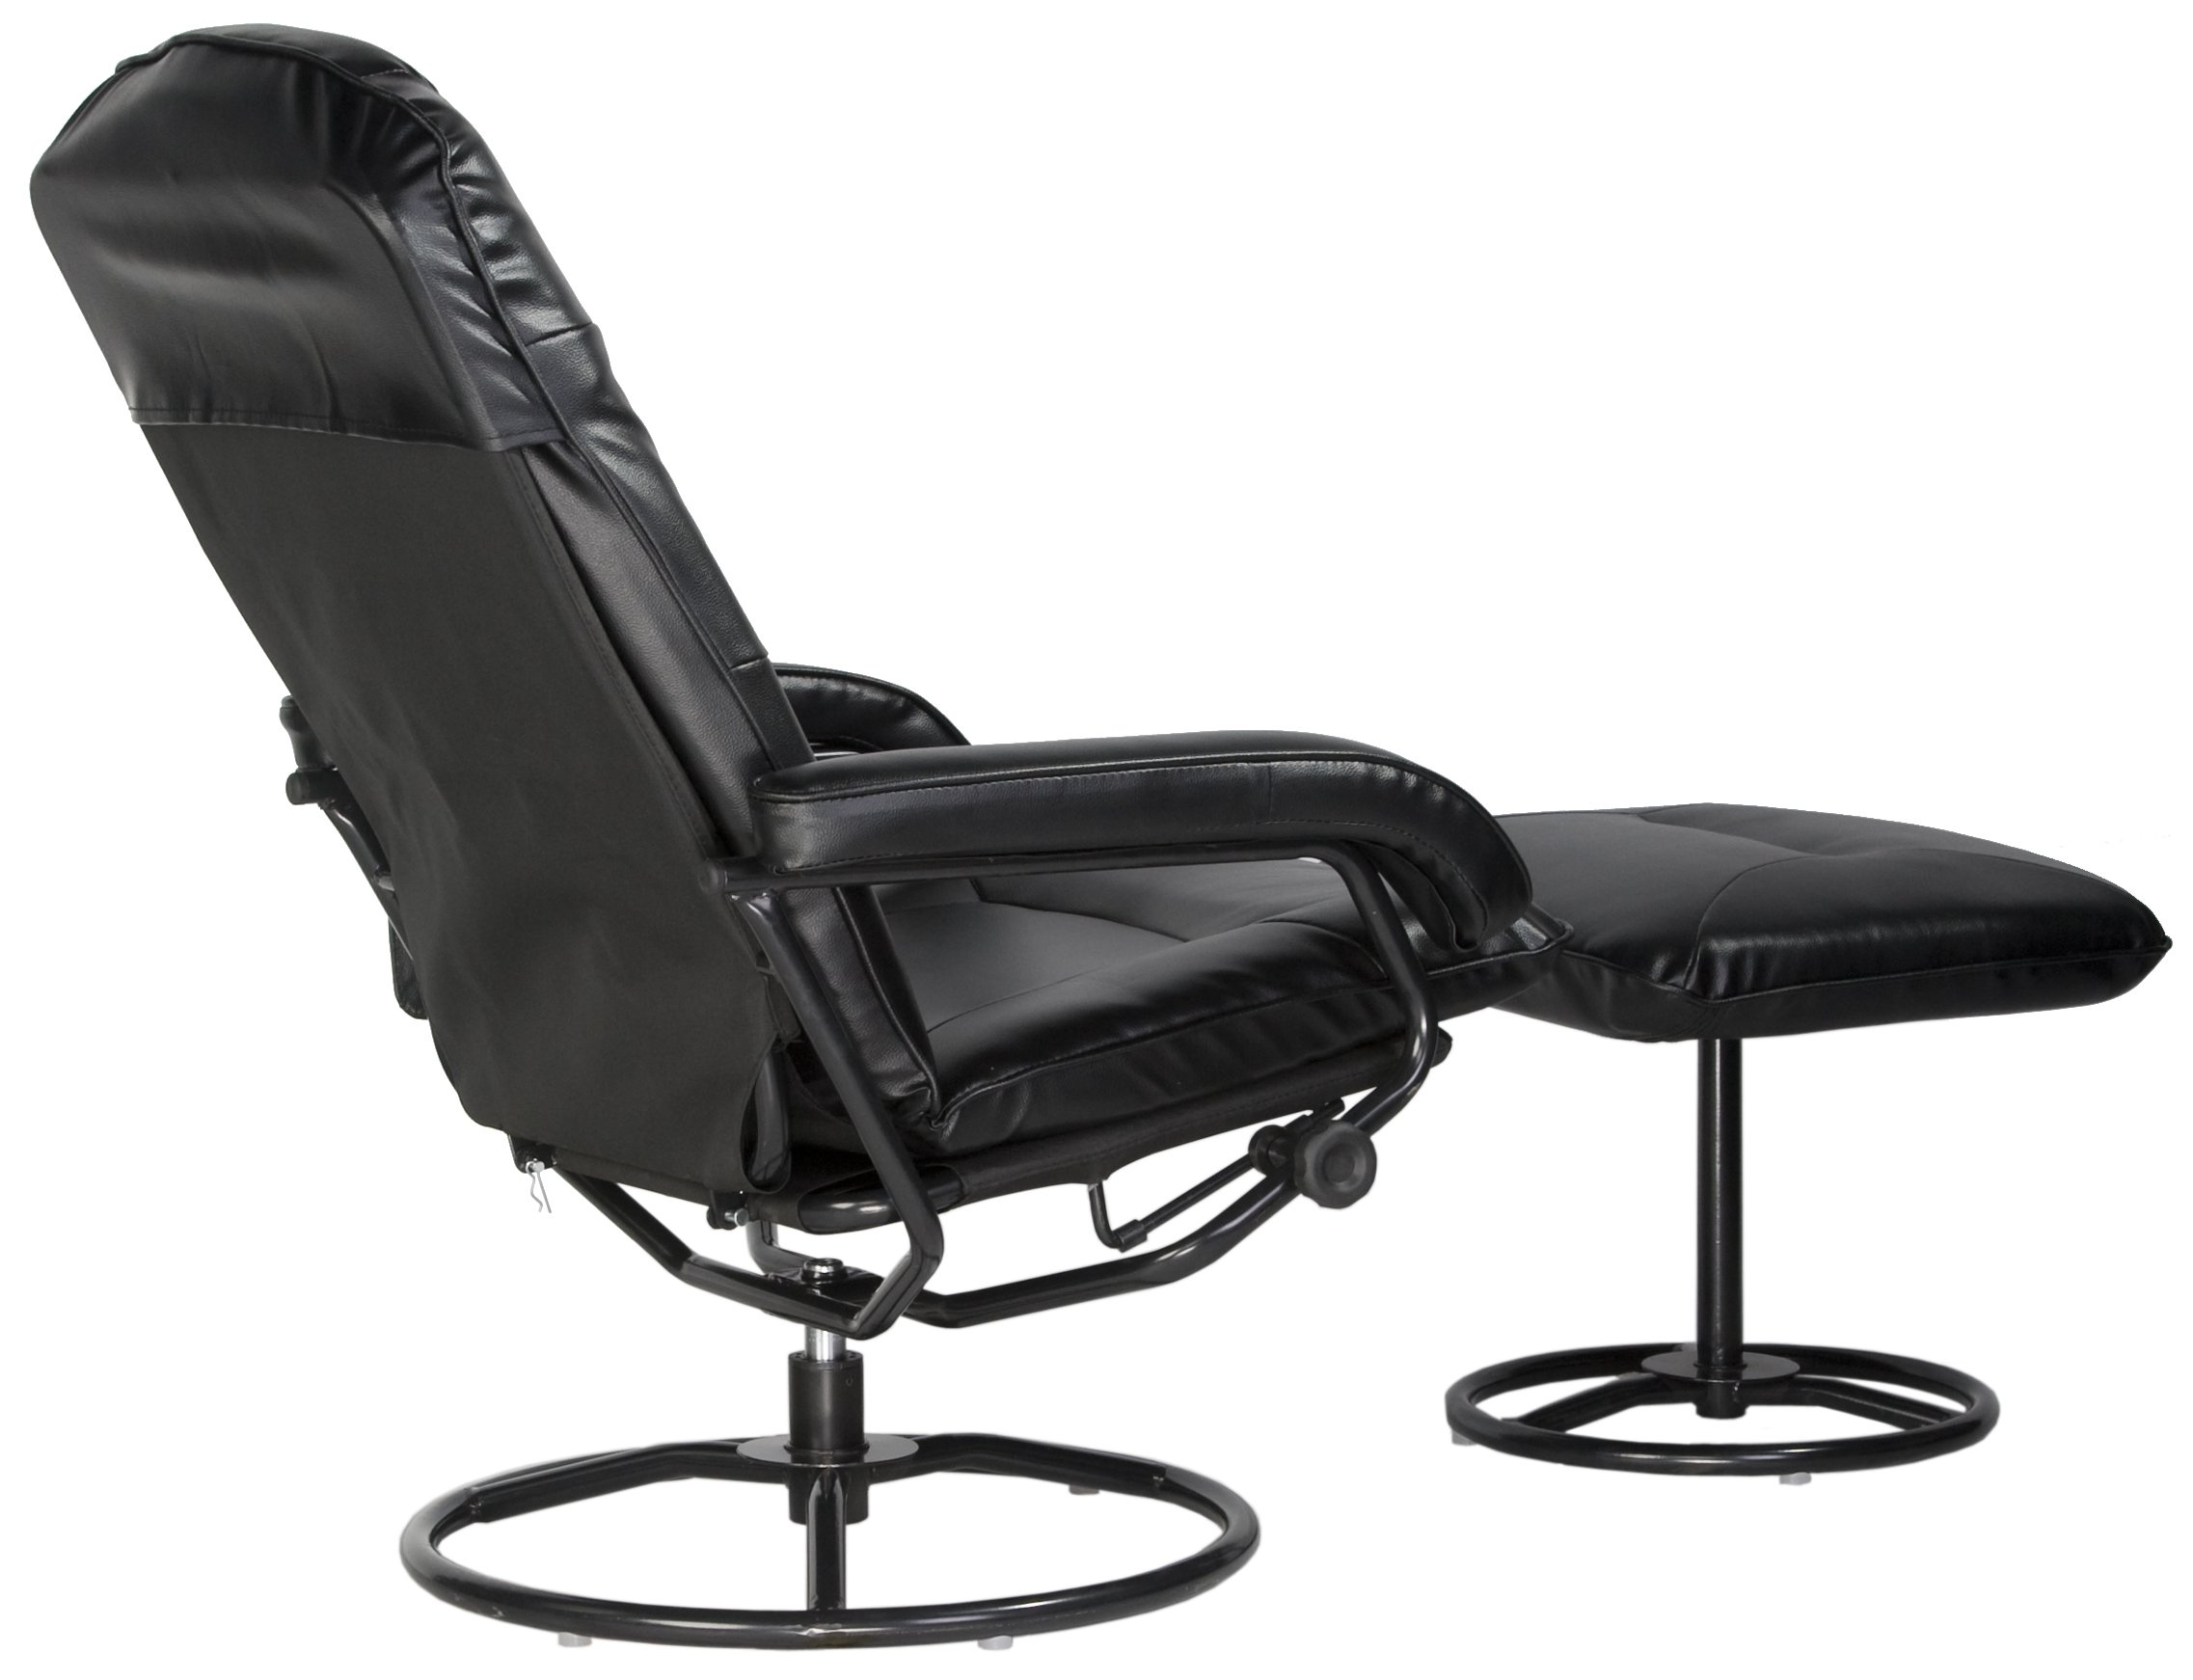 Comfort Products 60-0582 Leisure Recliner Chair with 10-Motor Massage & Heat, Black by Comfort Products (Image #4)